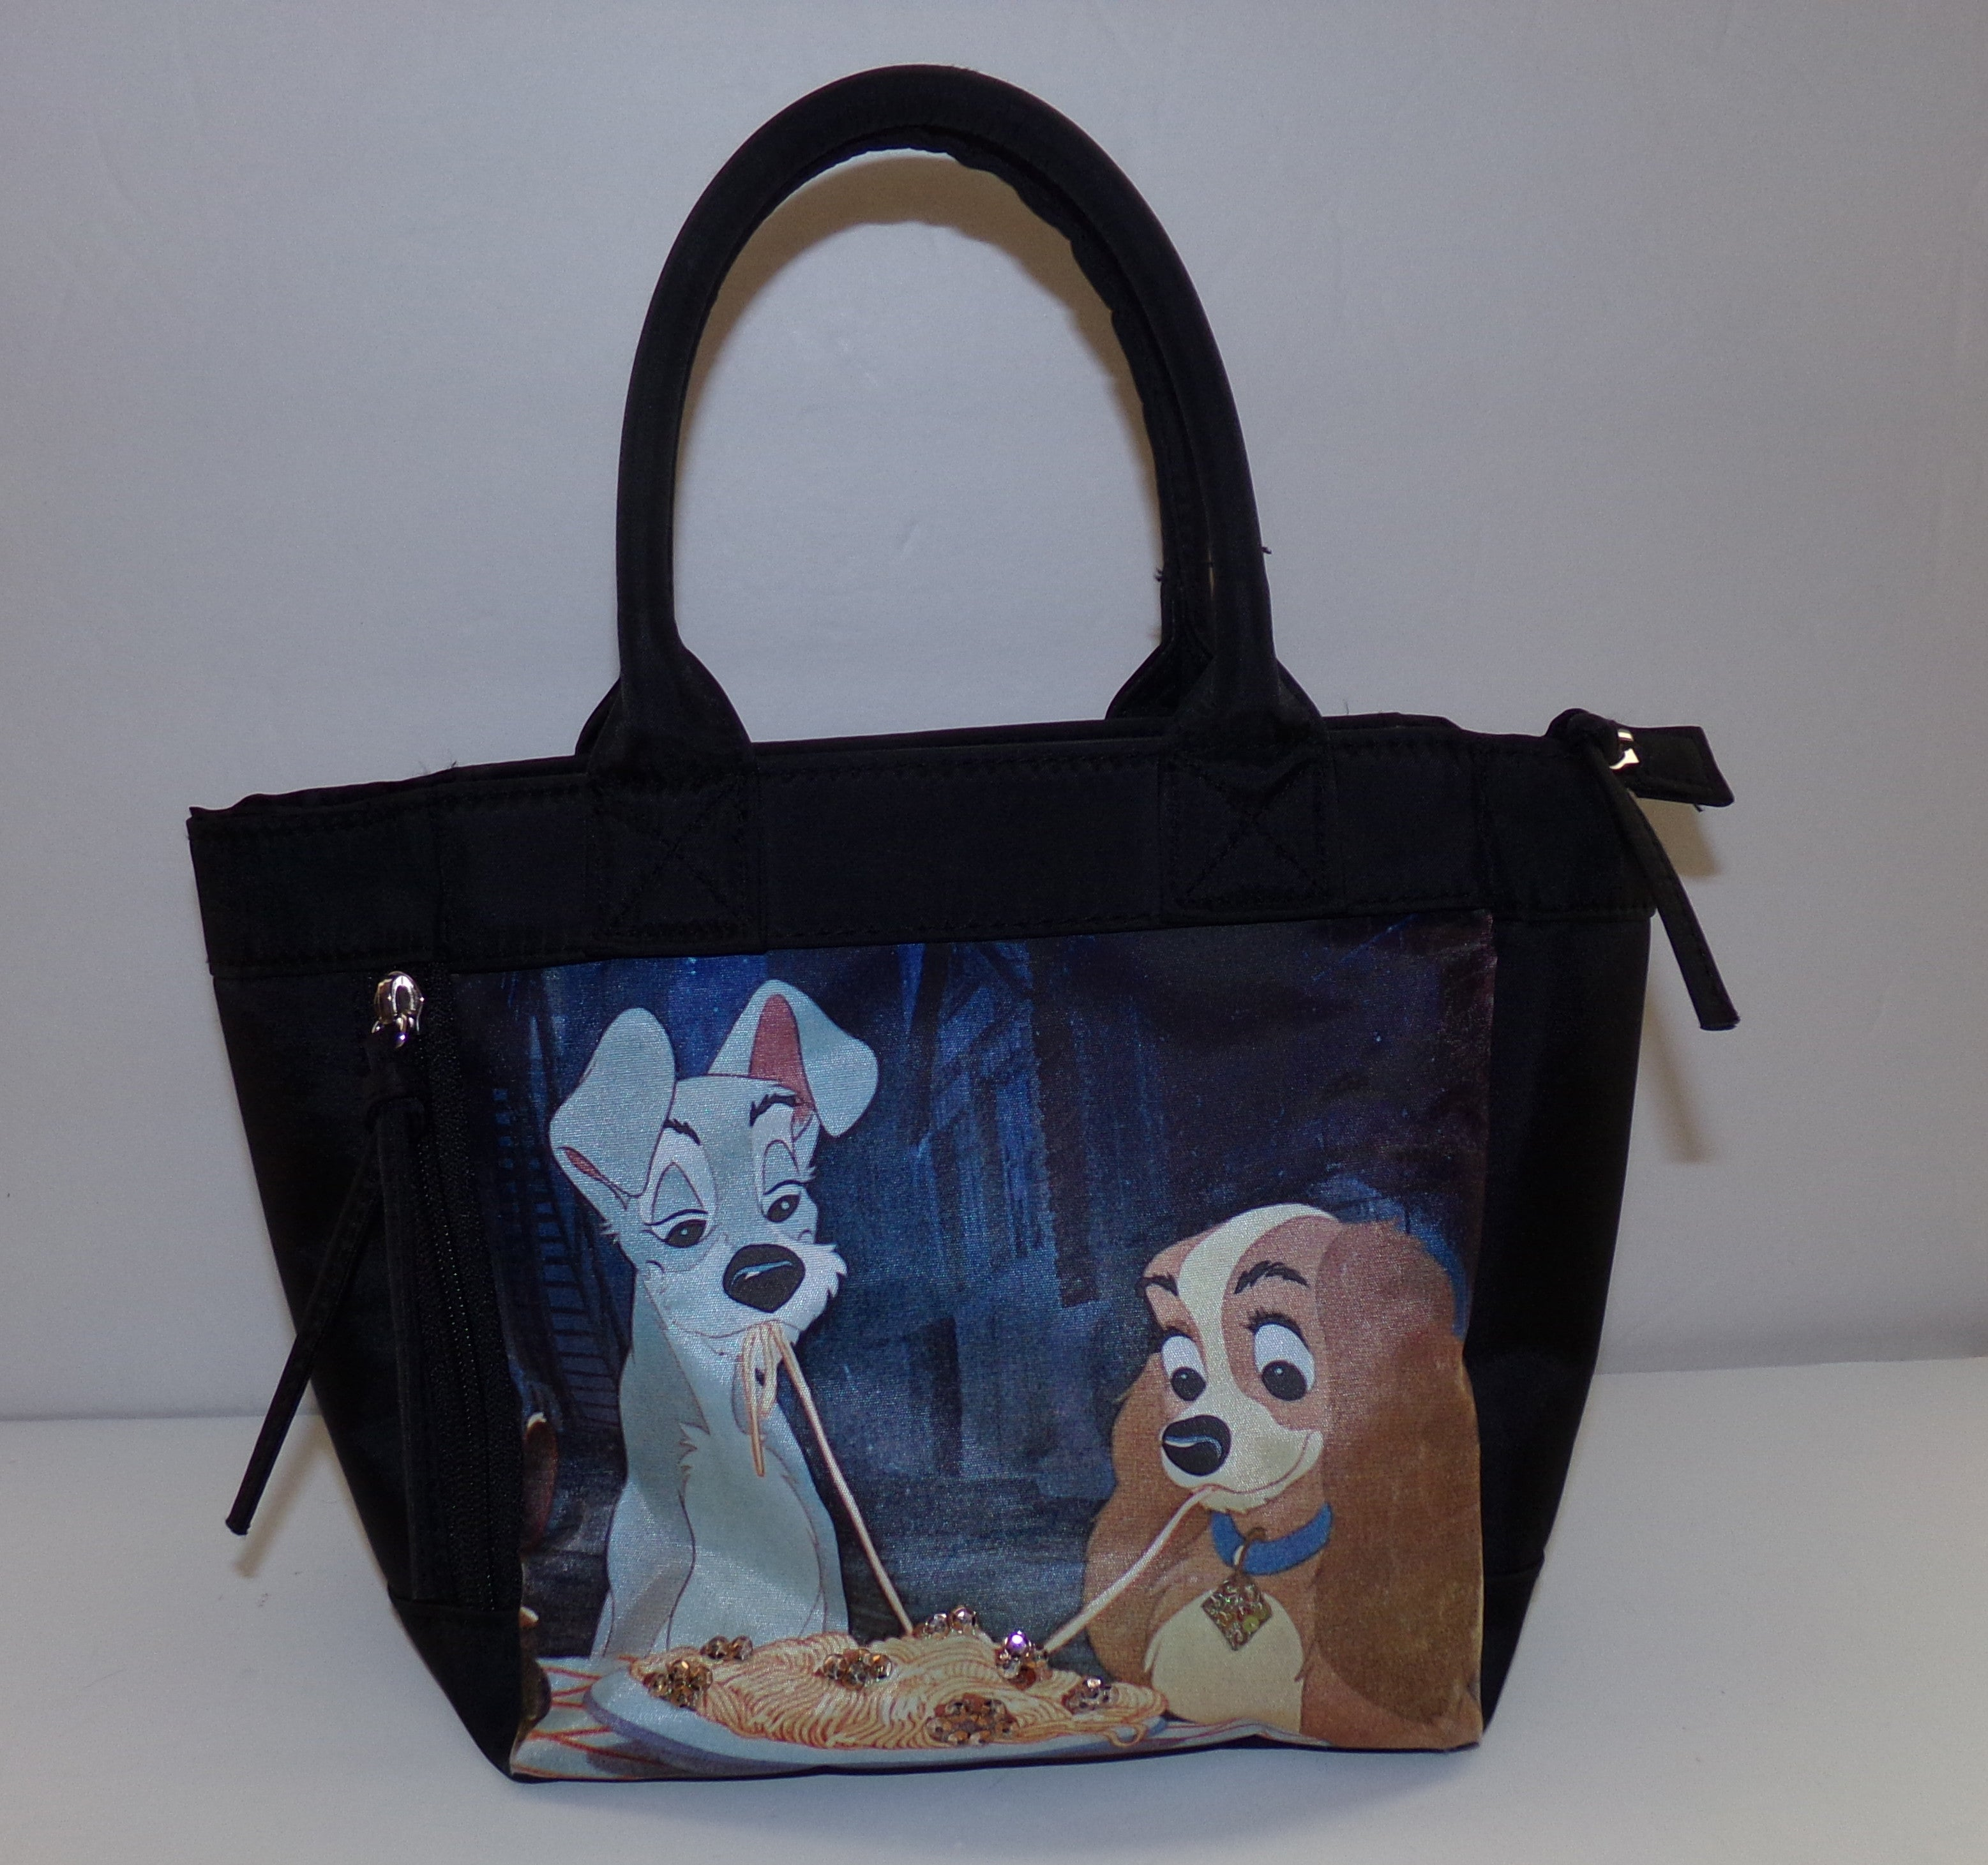 Black Disney Lady And The Tramp Purse - We Got Character